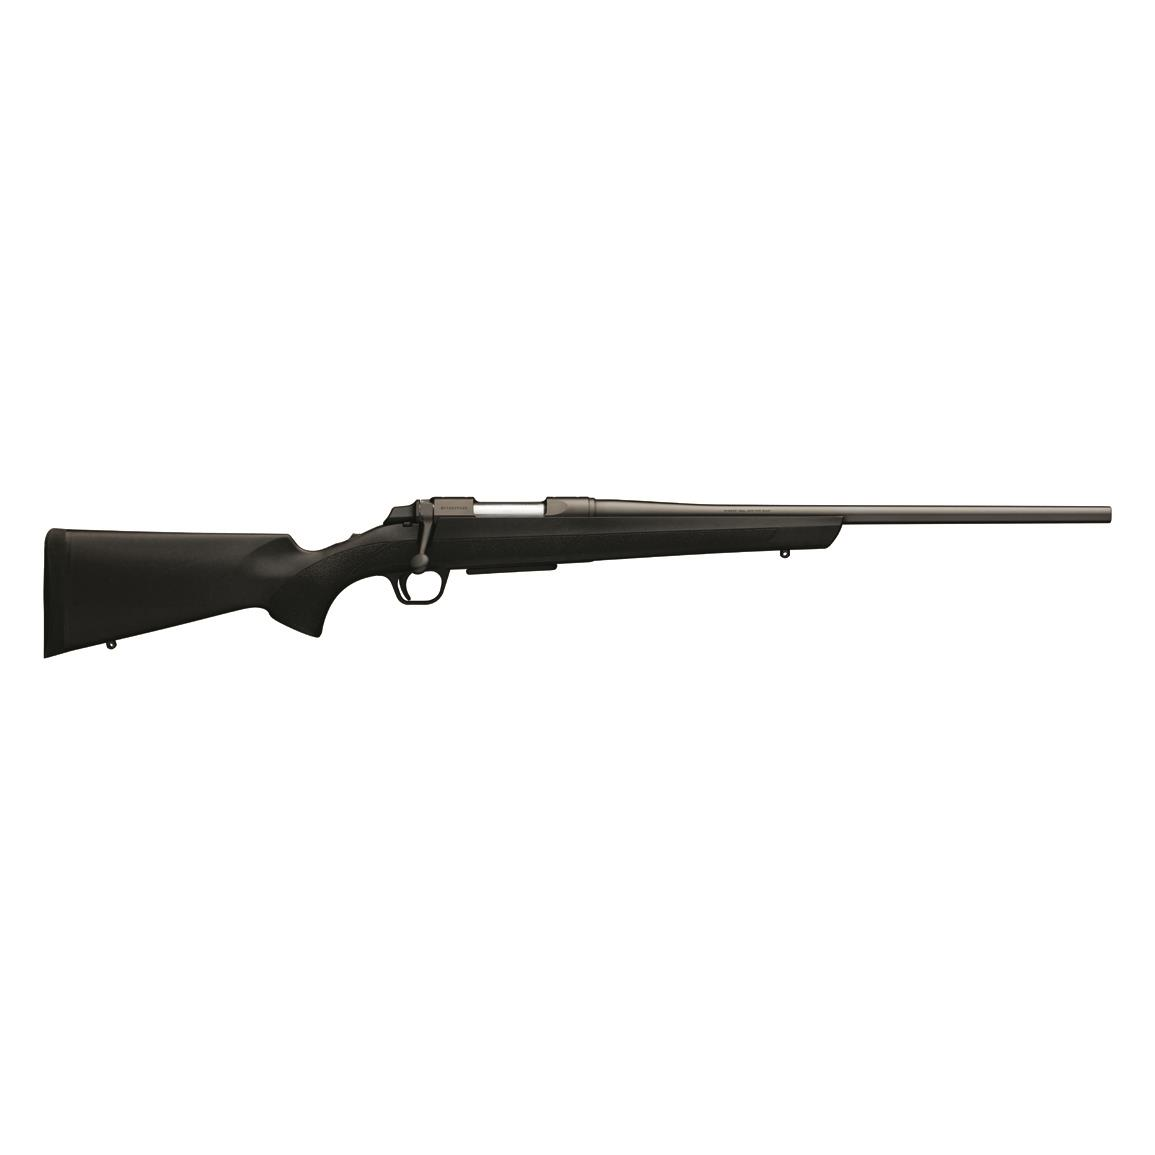 "Browning AB3 Micro Stalker, Bolt Action, 6.5mm Creedmoor, 20"" Barrel, 5+1 Rounds"